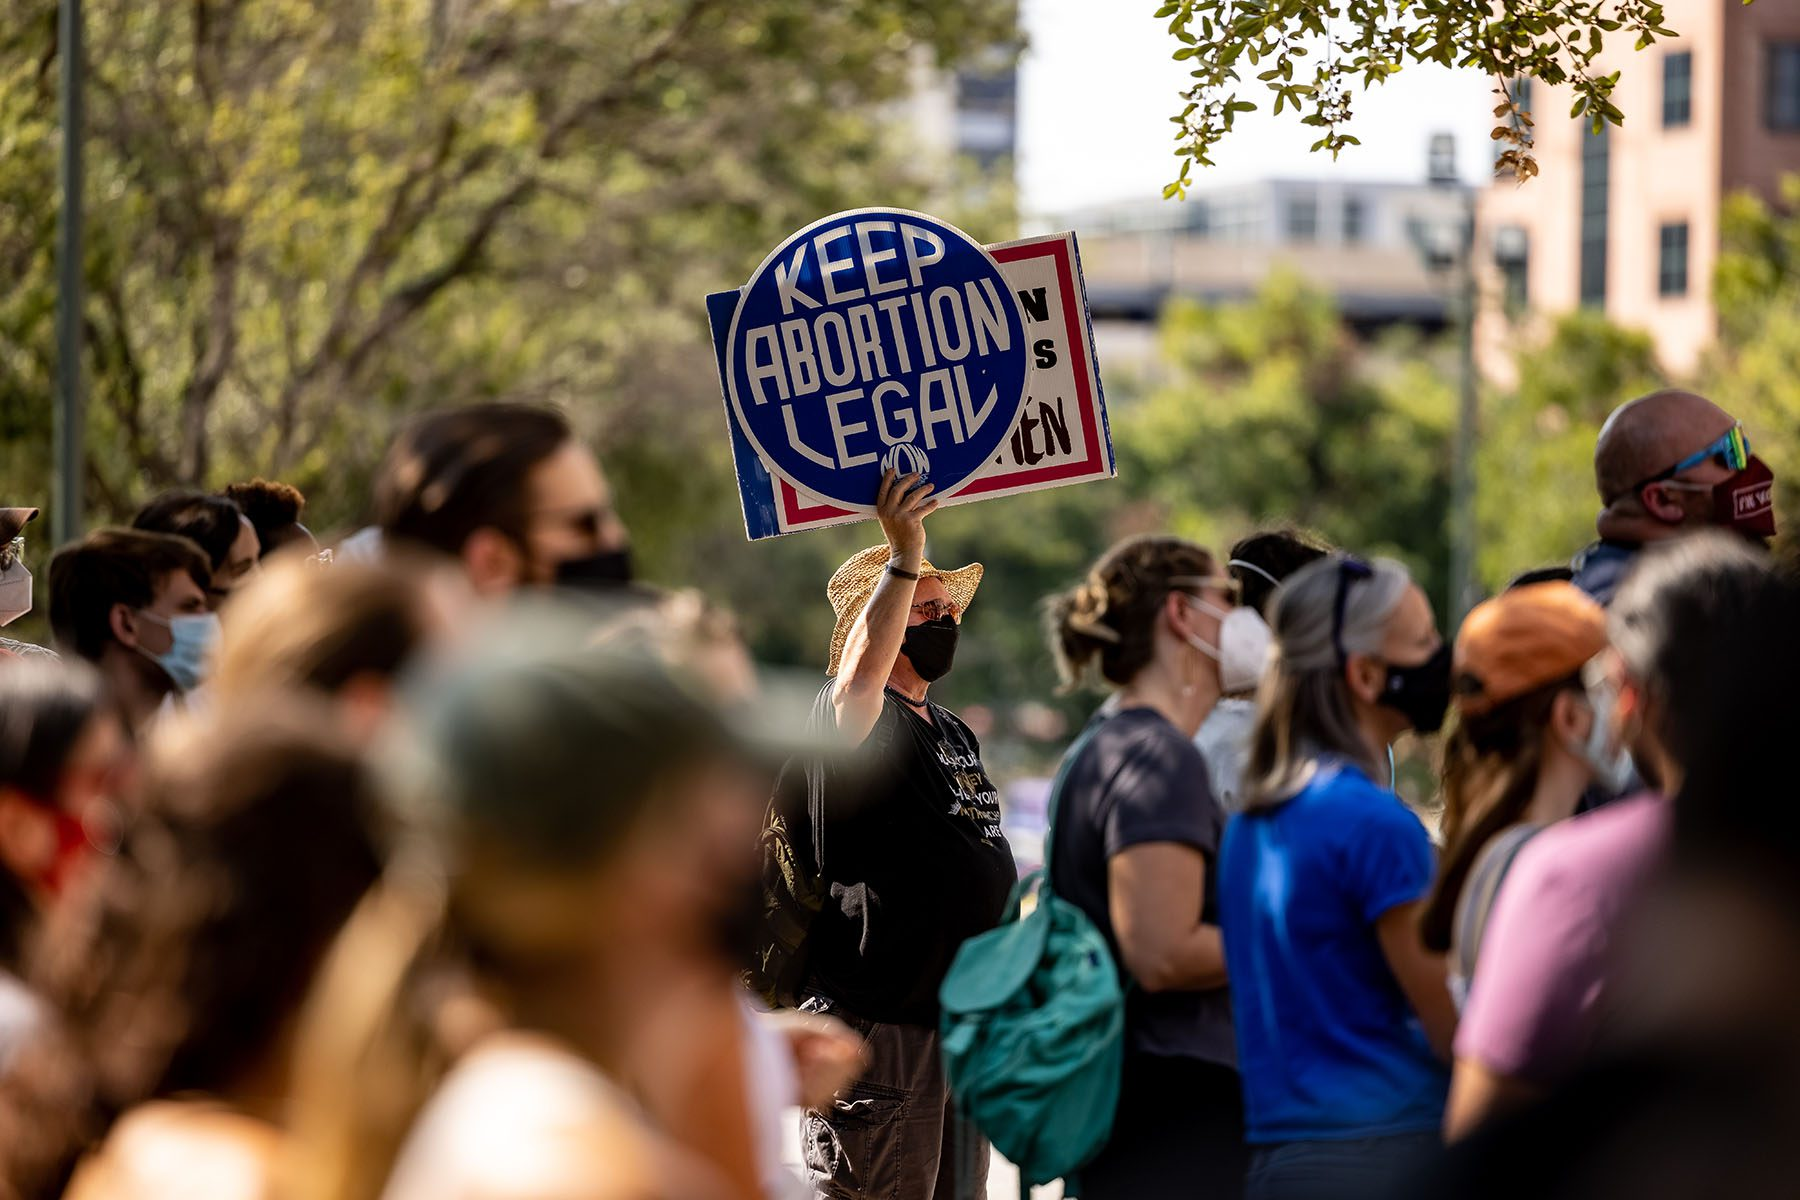 """A person wearing a sat holds up a sign that reads """"Keep Abortion Legal"""" as people gather near the State Capitol to protest the new abortion bill."""